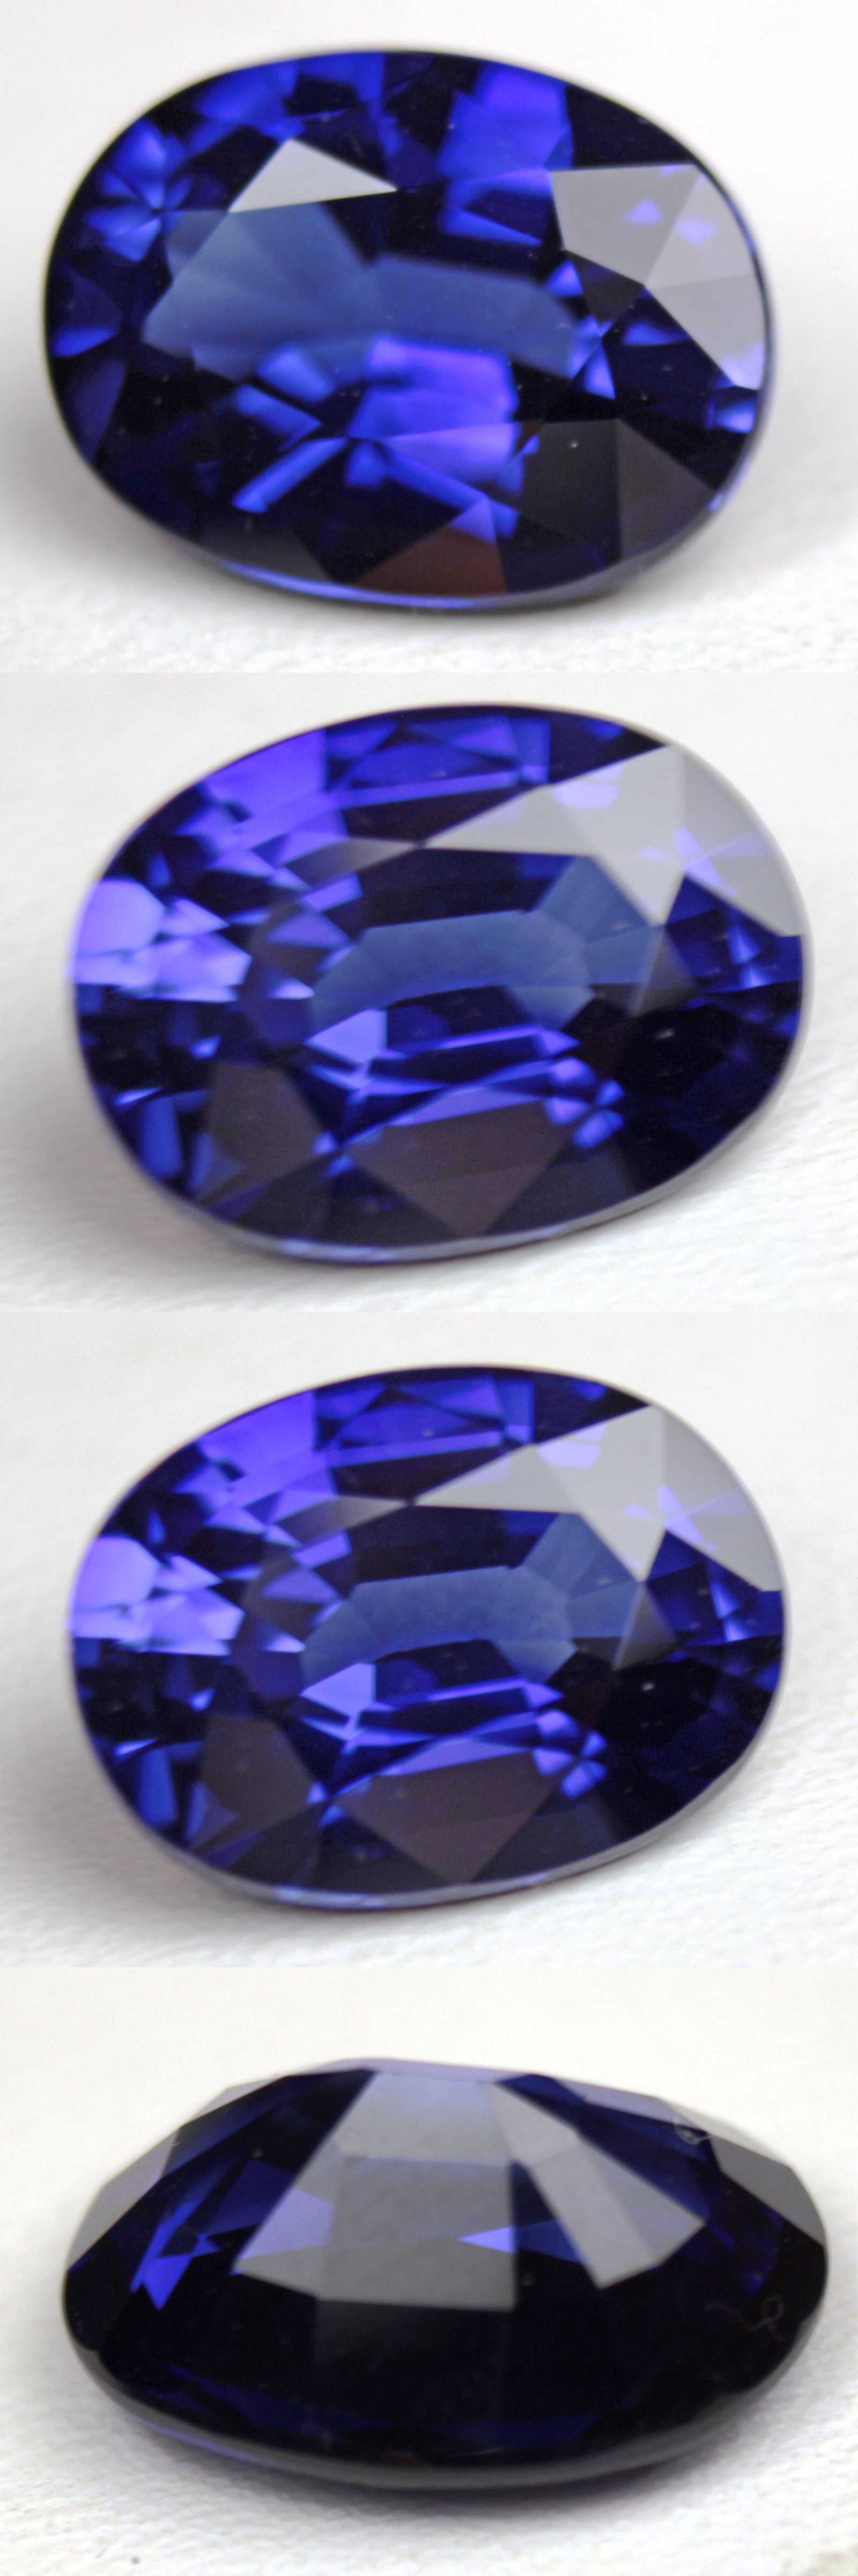 blue sapphire princess gemstones topaz dark abb view front london carat ct oval